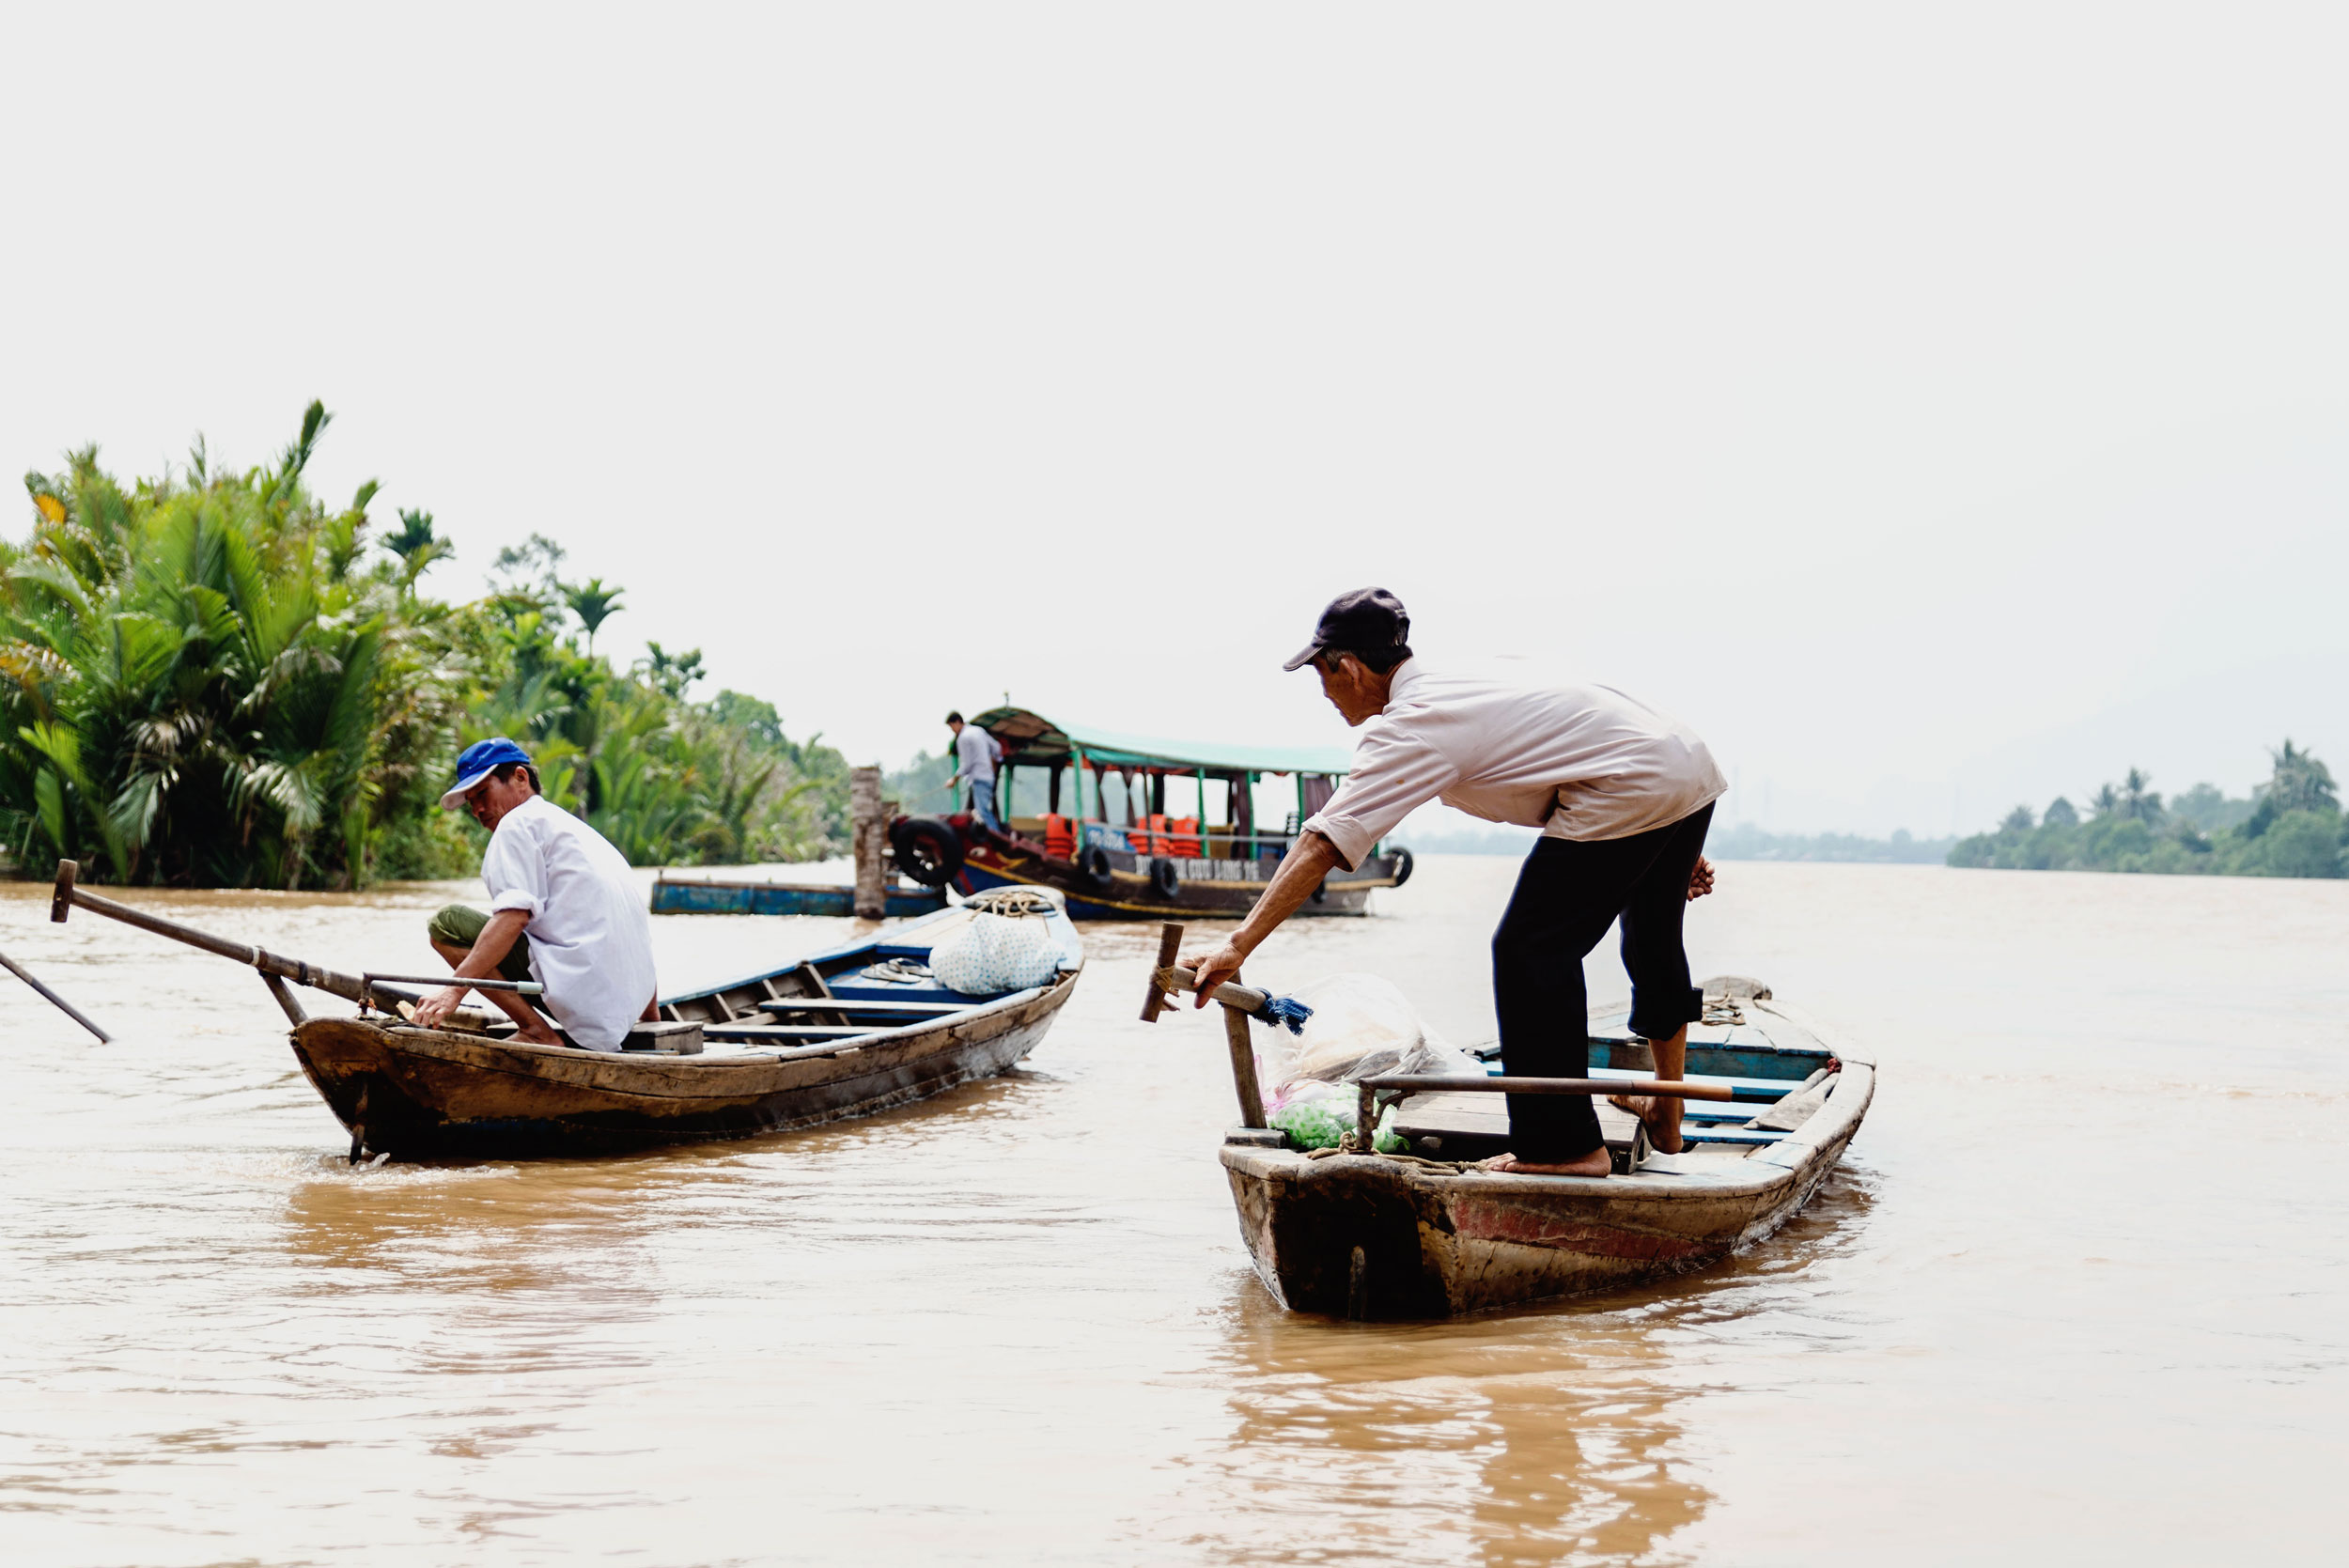 Locals on a boat on the Mekong river in Vietnam